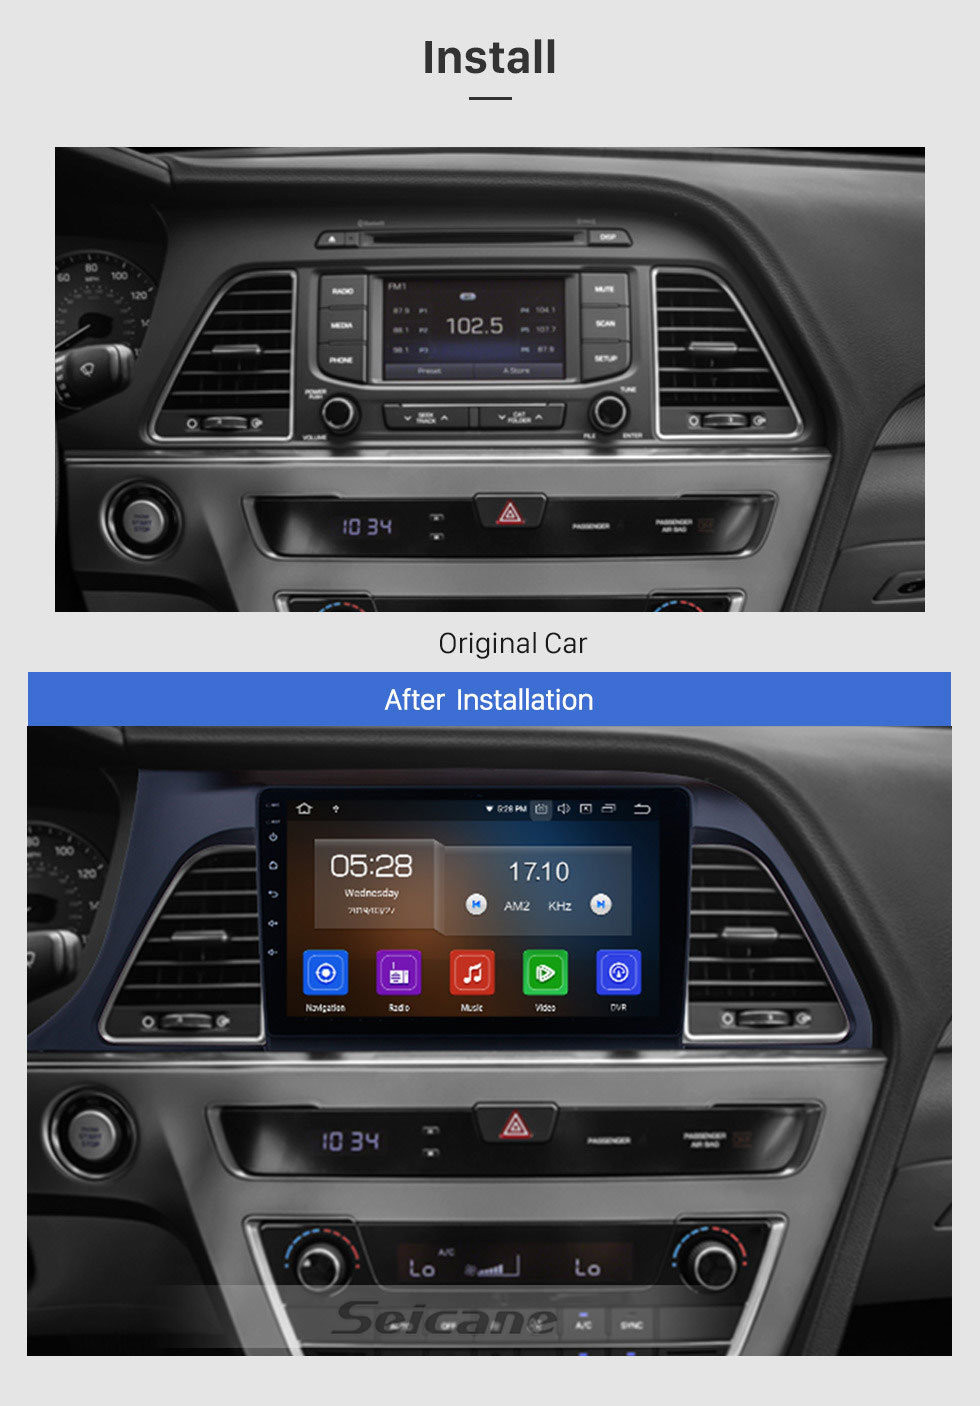 Seicane All in one 9 Inch Aftermarket GPS Navigation Head unit For 2015 2016 2017 Hyundai Sonata 9 Android 10.0 Radio HD Touch Screen Steering Wheel Control TV tuner Bluetooth Music DVD Player Backup Camera 4G WiFi